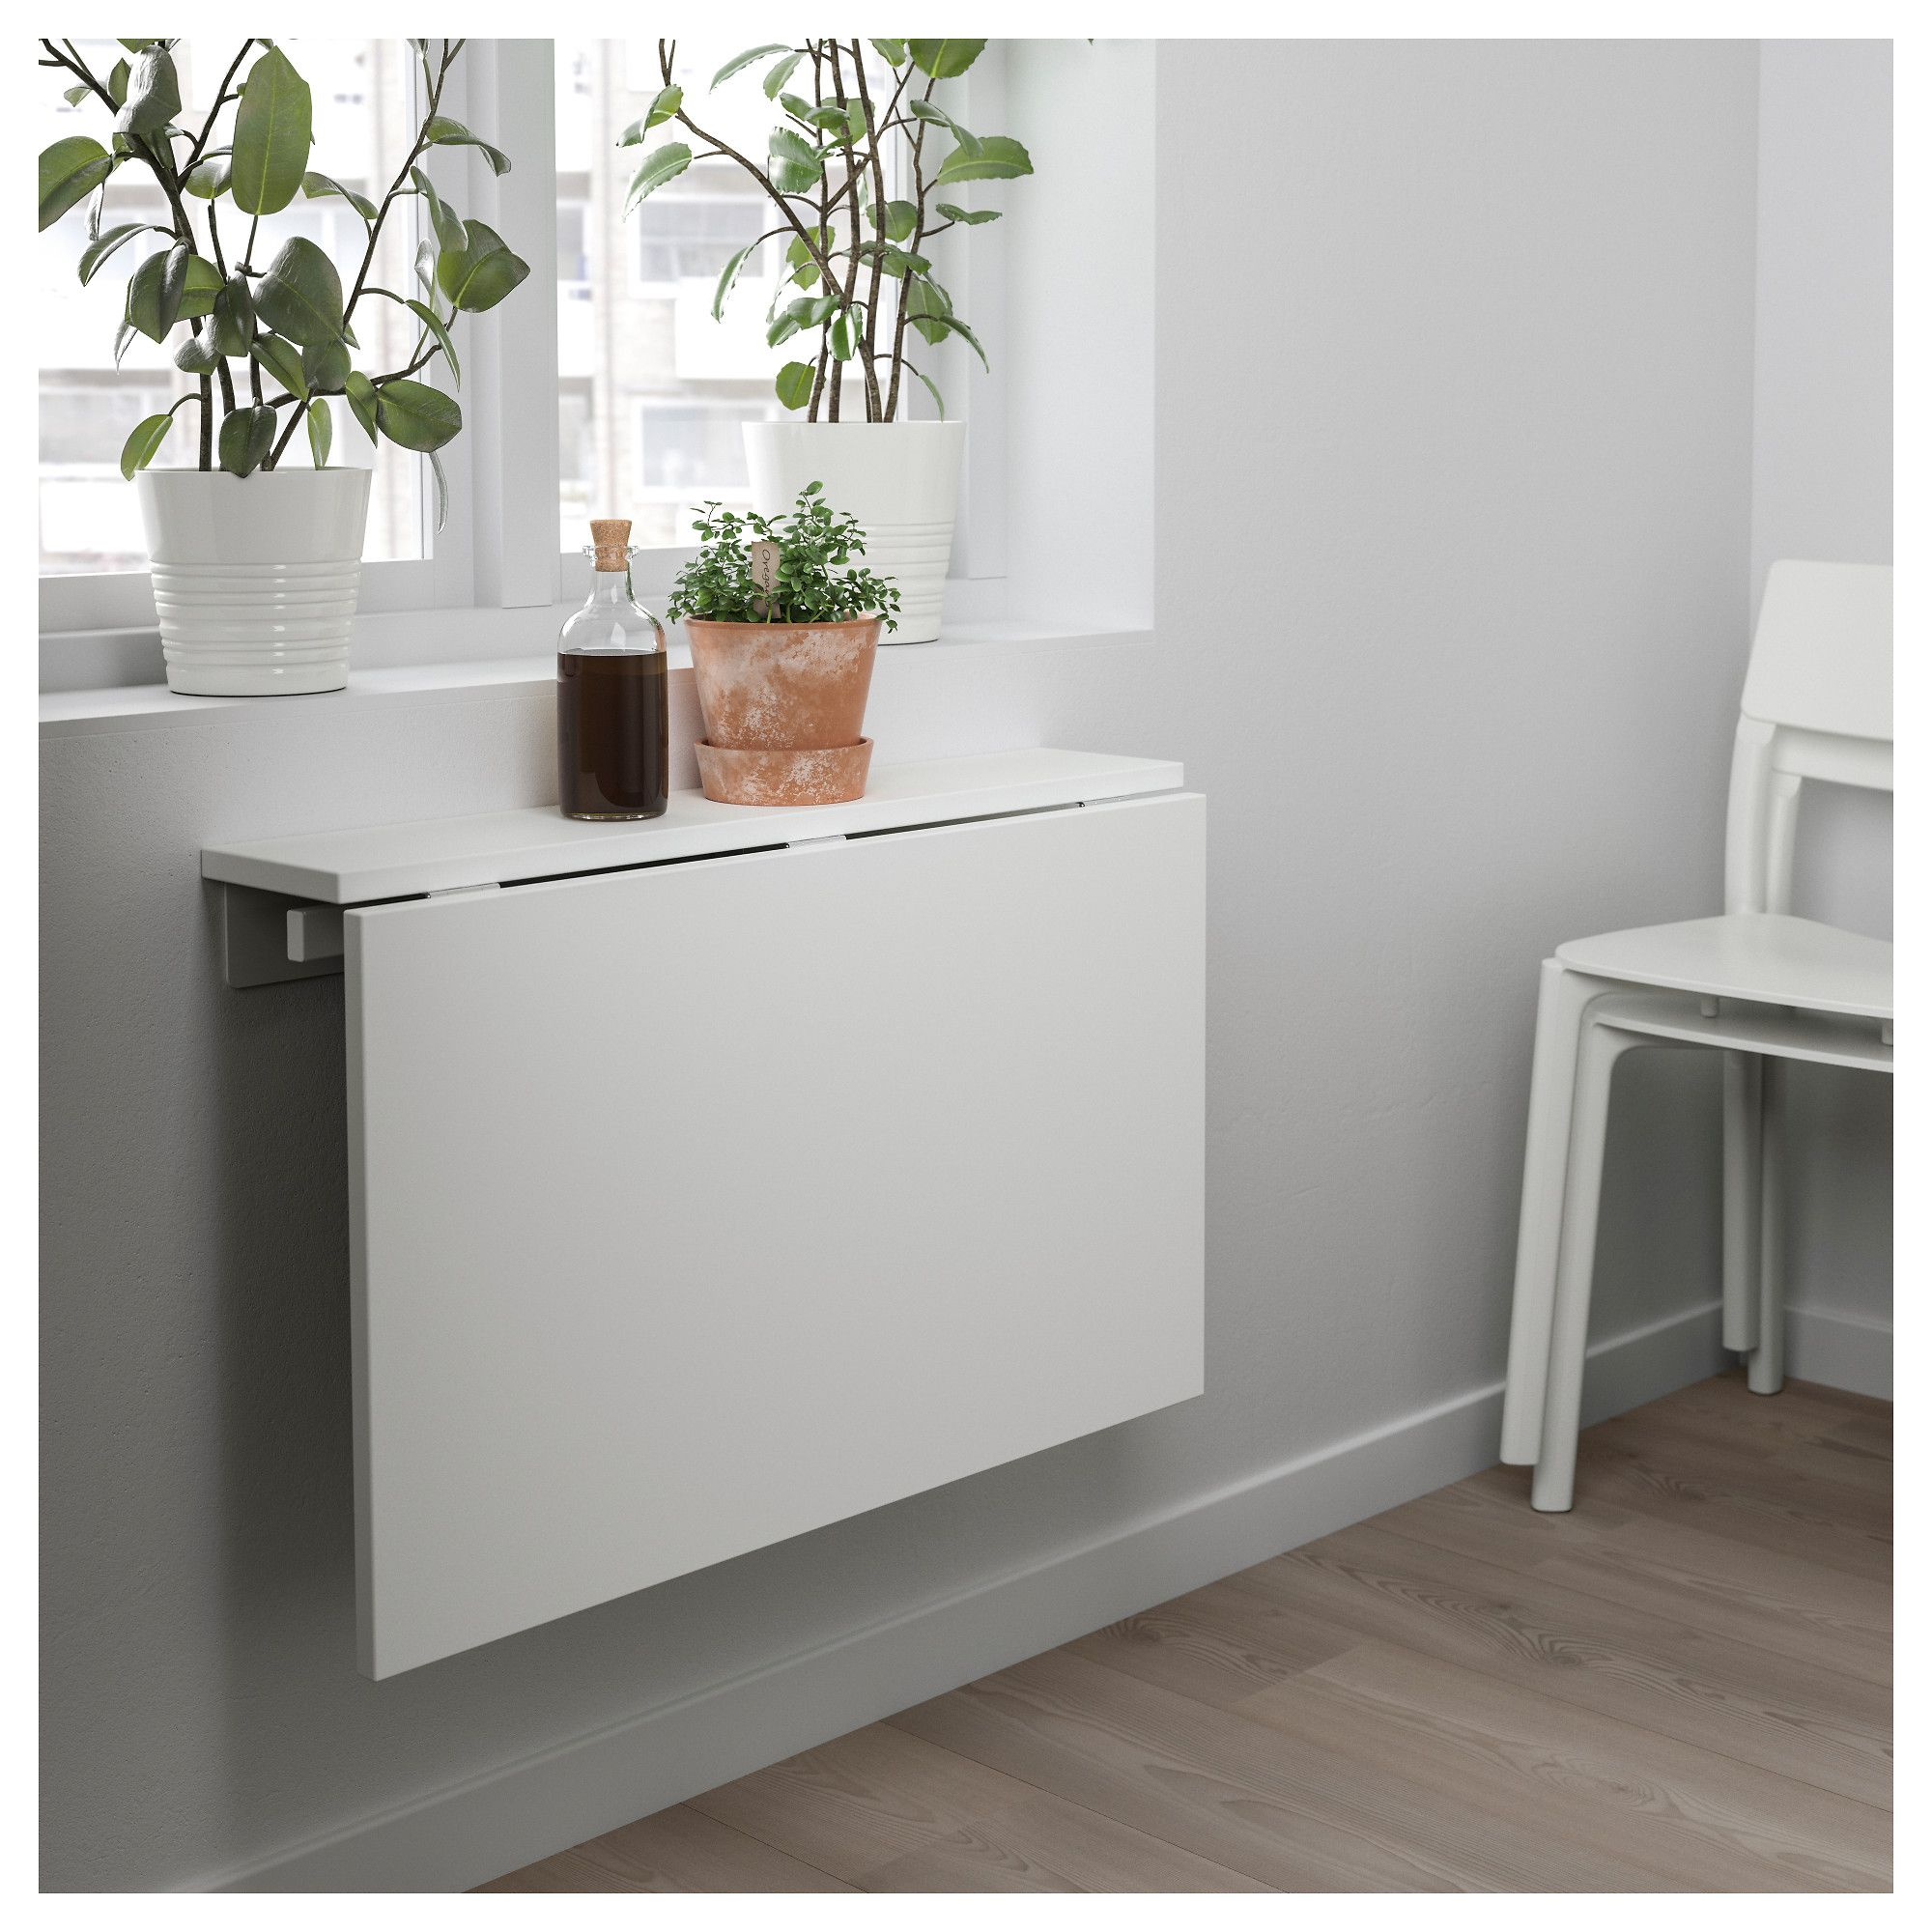 Norberg White Wall Mounted Drop Leaf Table Ikea Drop Leaf Table Wall Table Wall Mounted Table